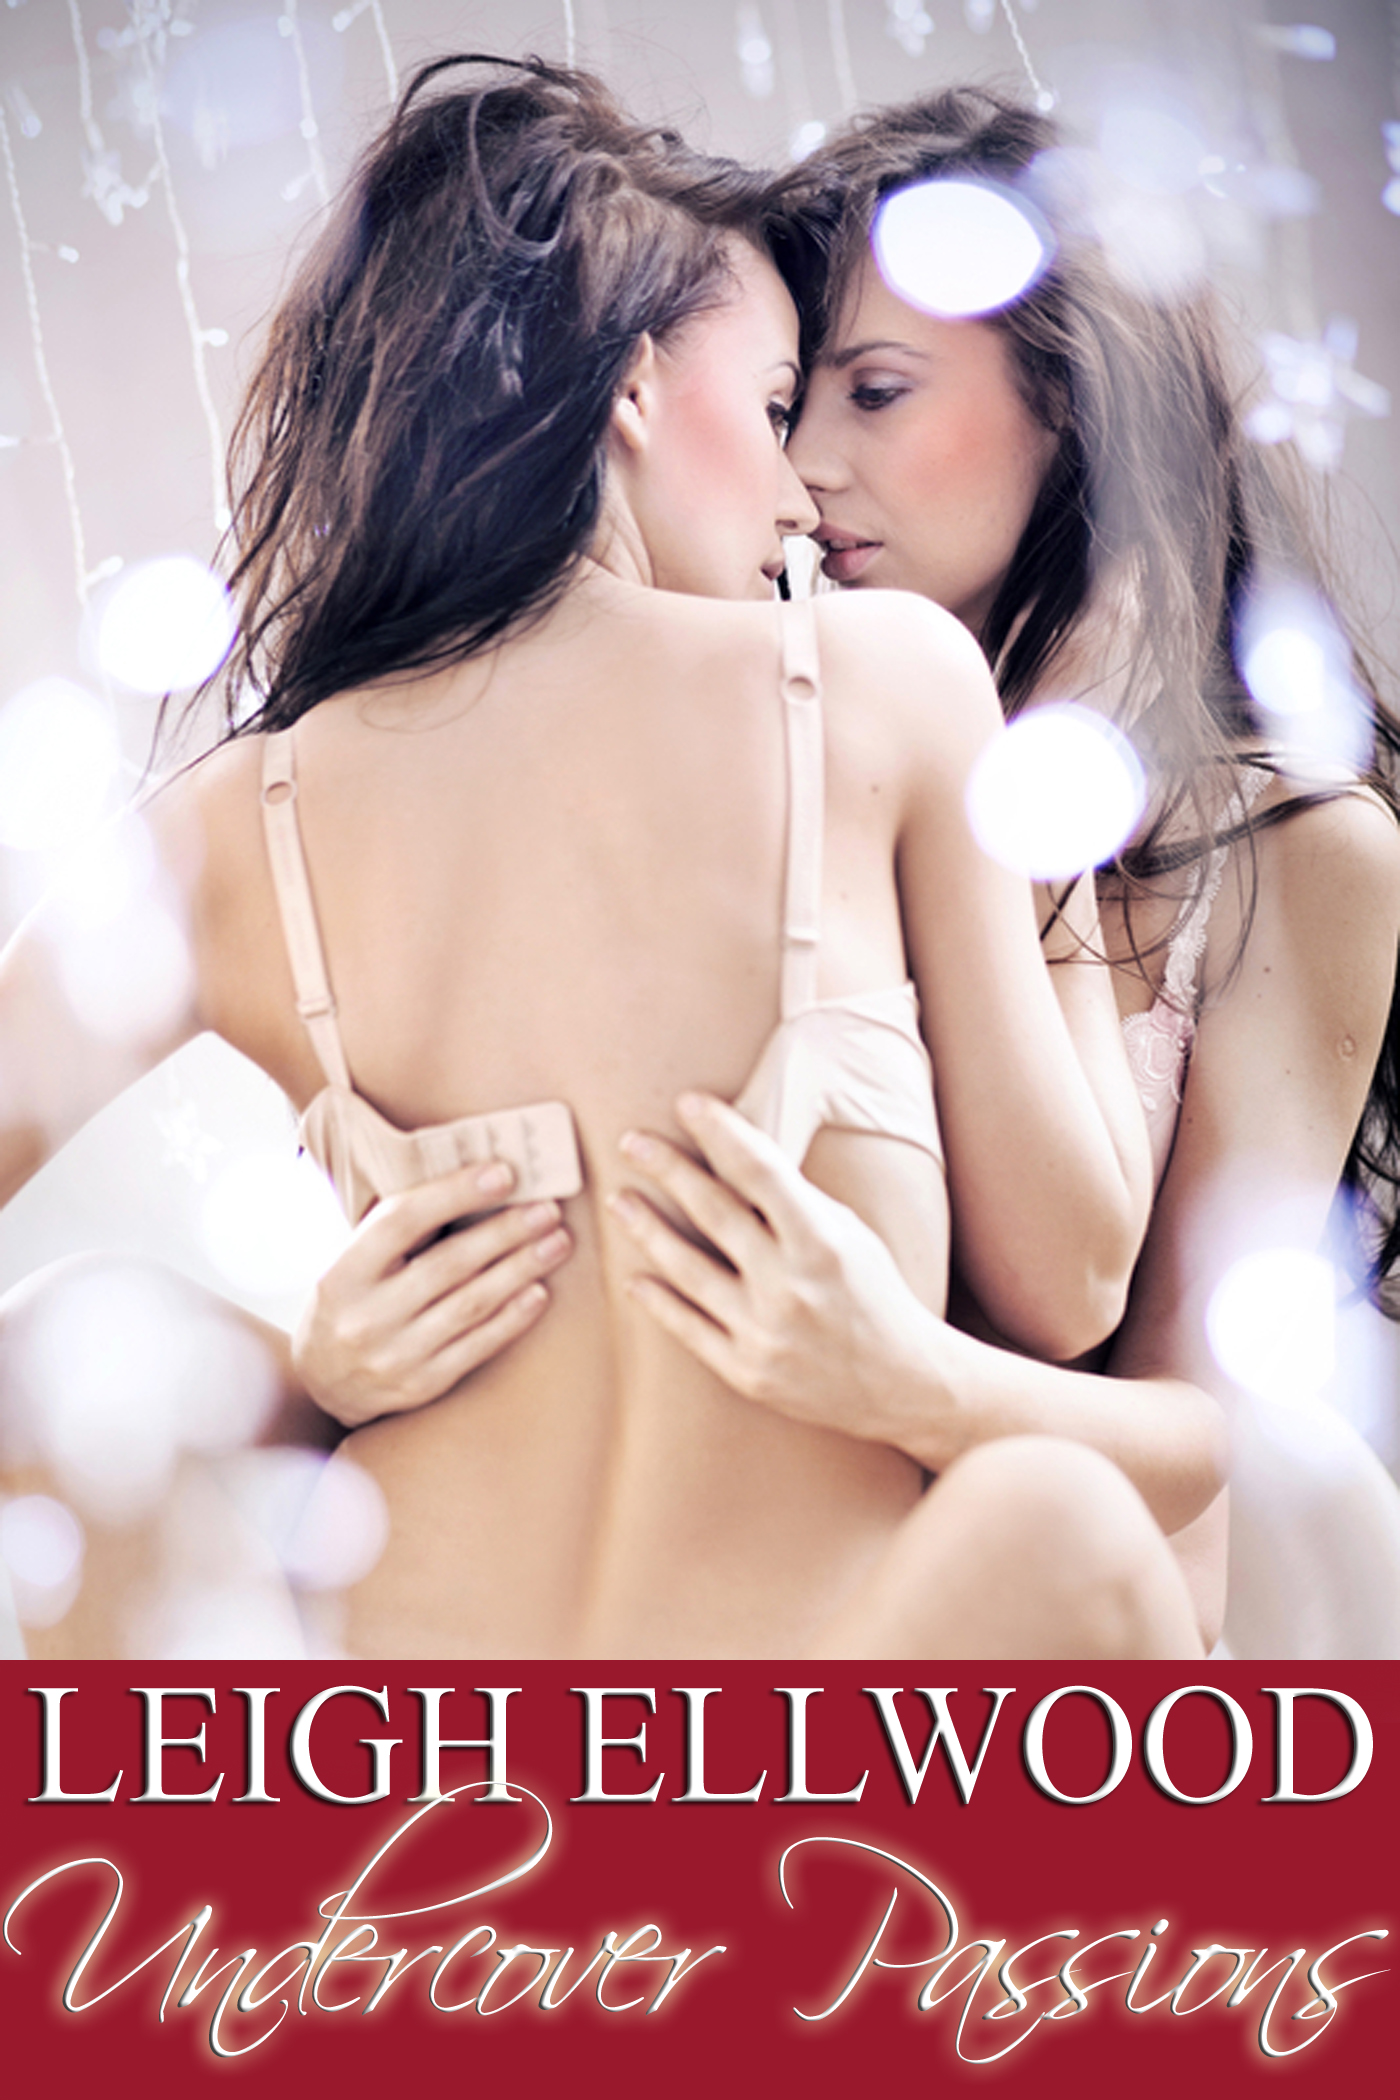 Undercover Passions By: Leigh Ellwood